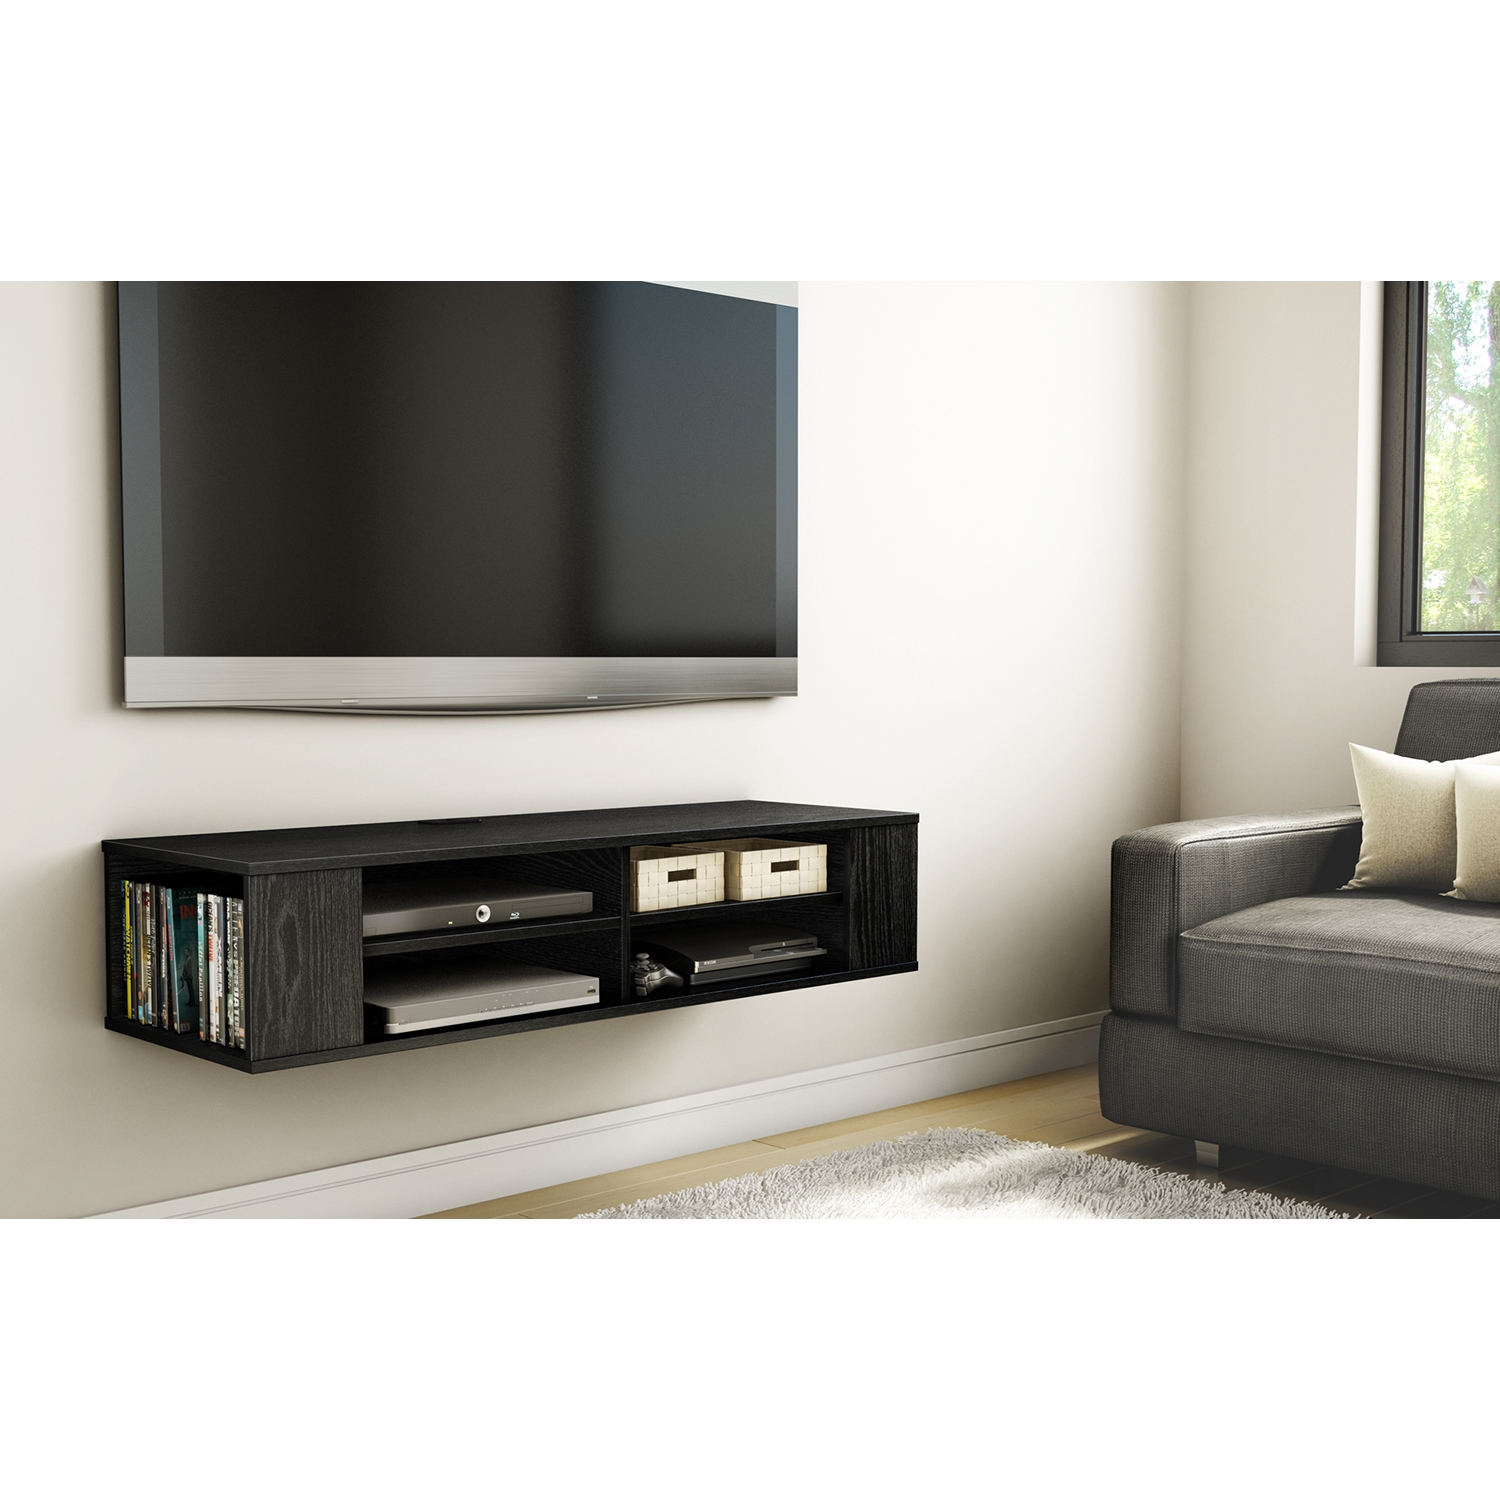 City Life Wall Mounted Media Console - Black Oak - SS-4147675